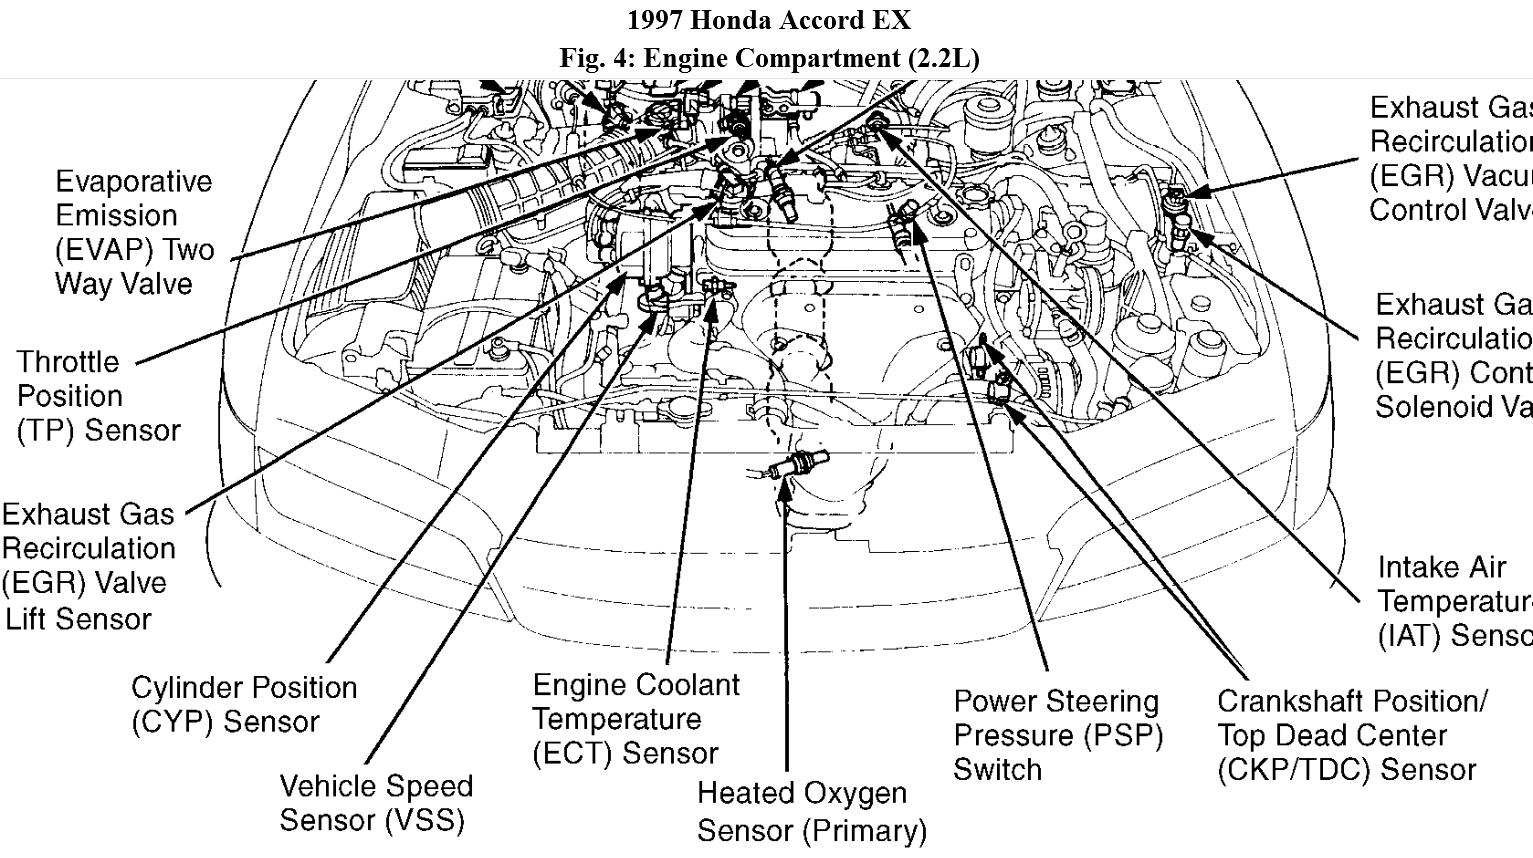 1992 Honda Accord Wiring Diagram